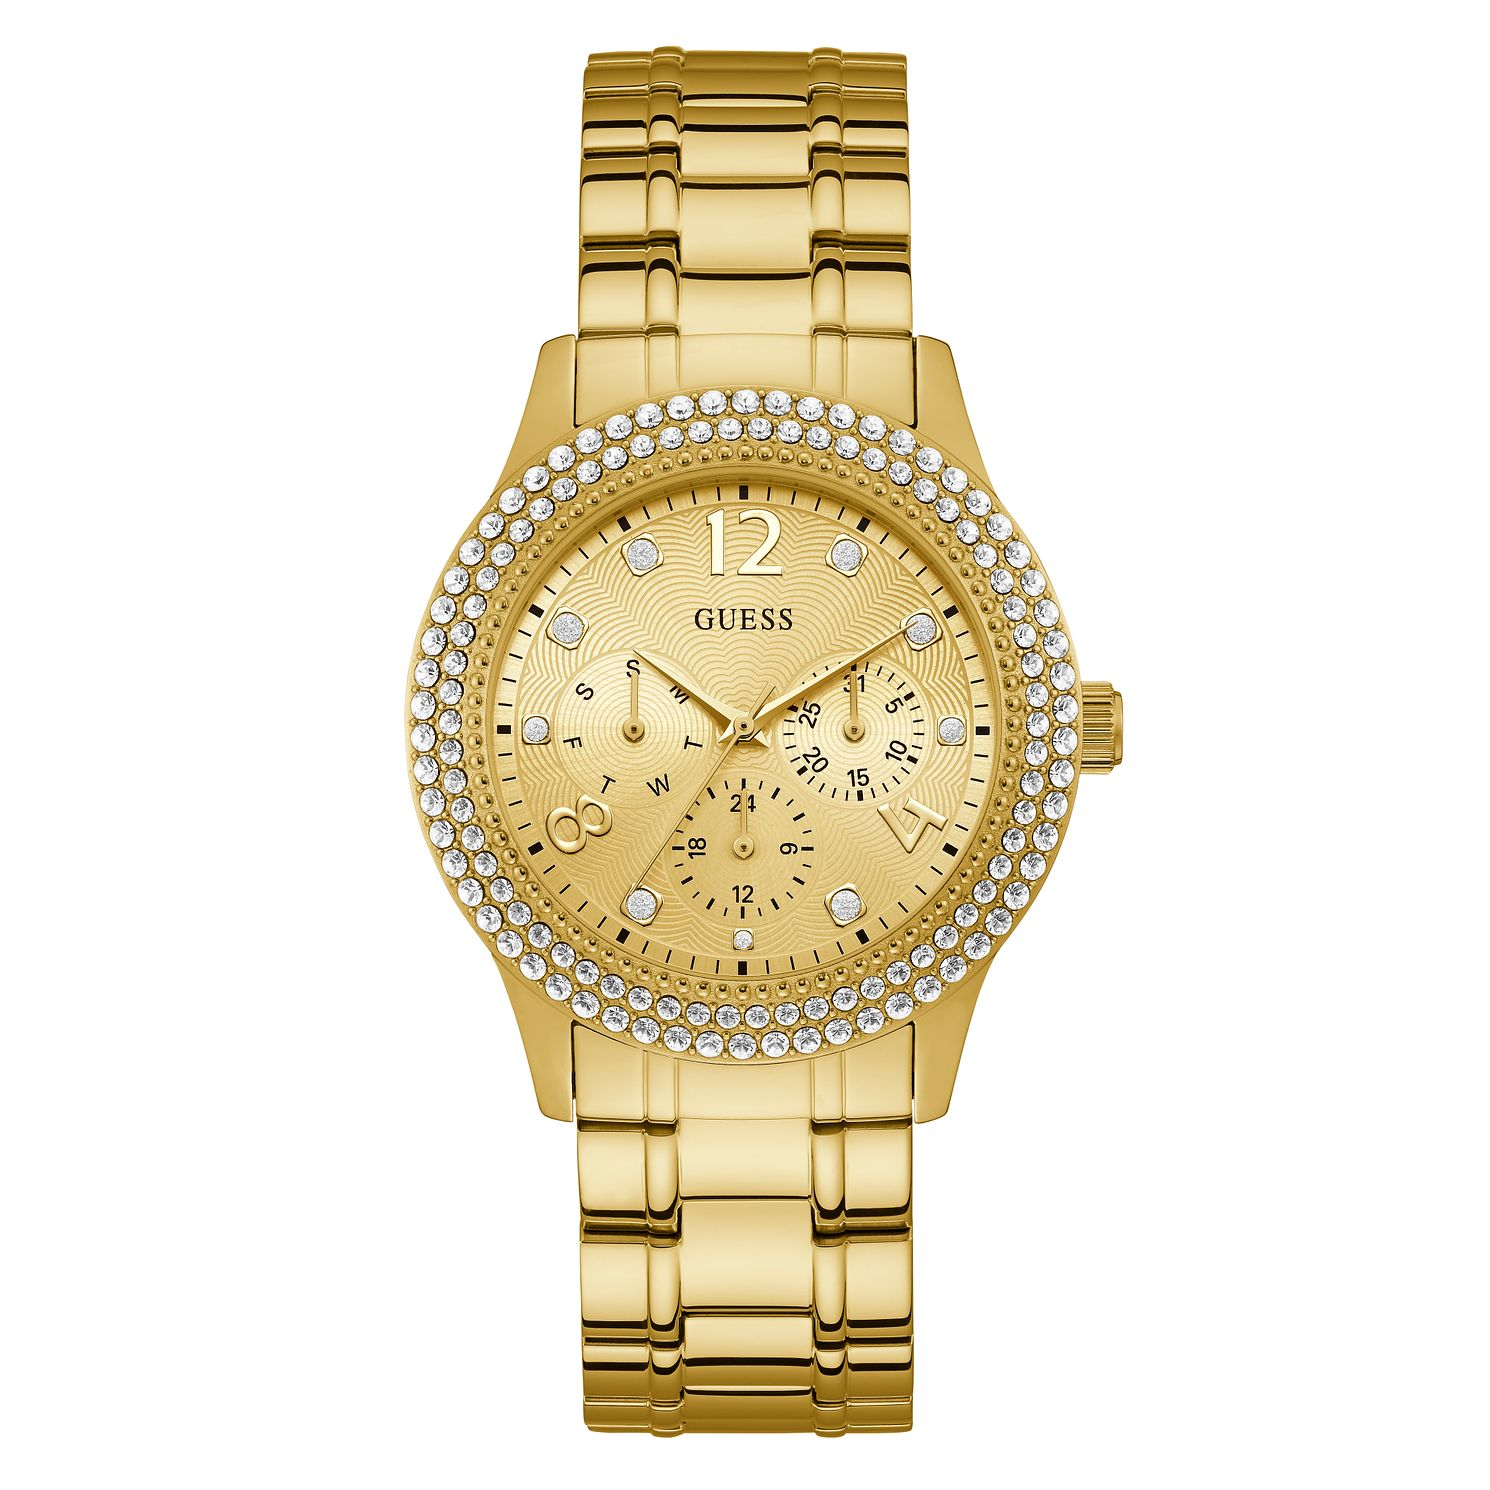 Guess Ladies' Crystal Yellow Gold Plated Bracelet Watch - Product number 3821072